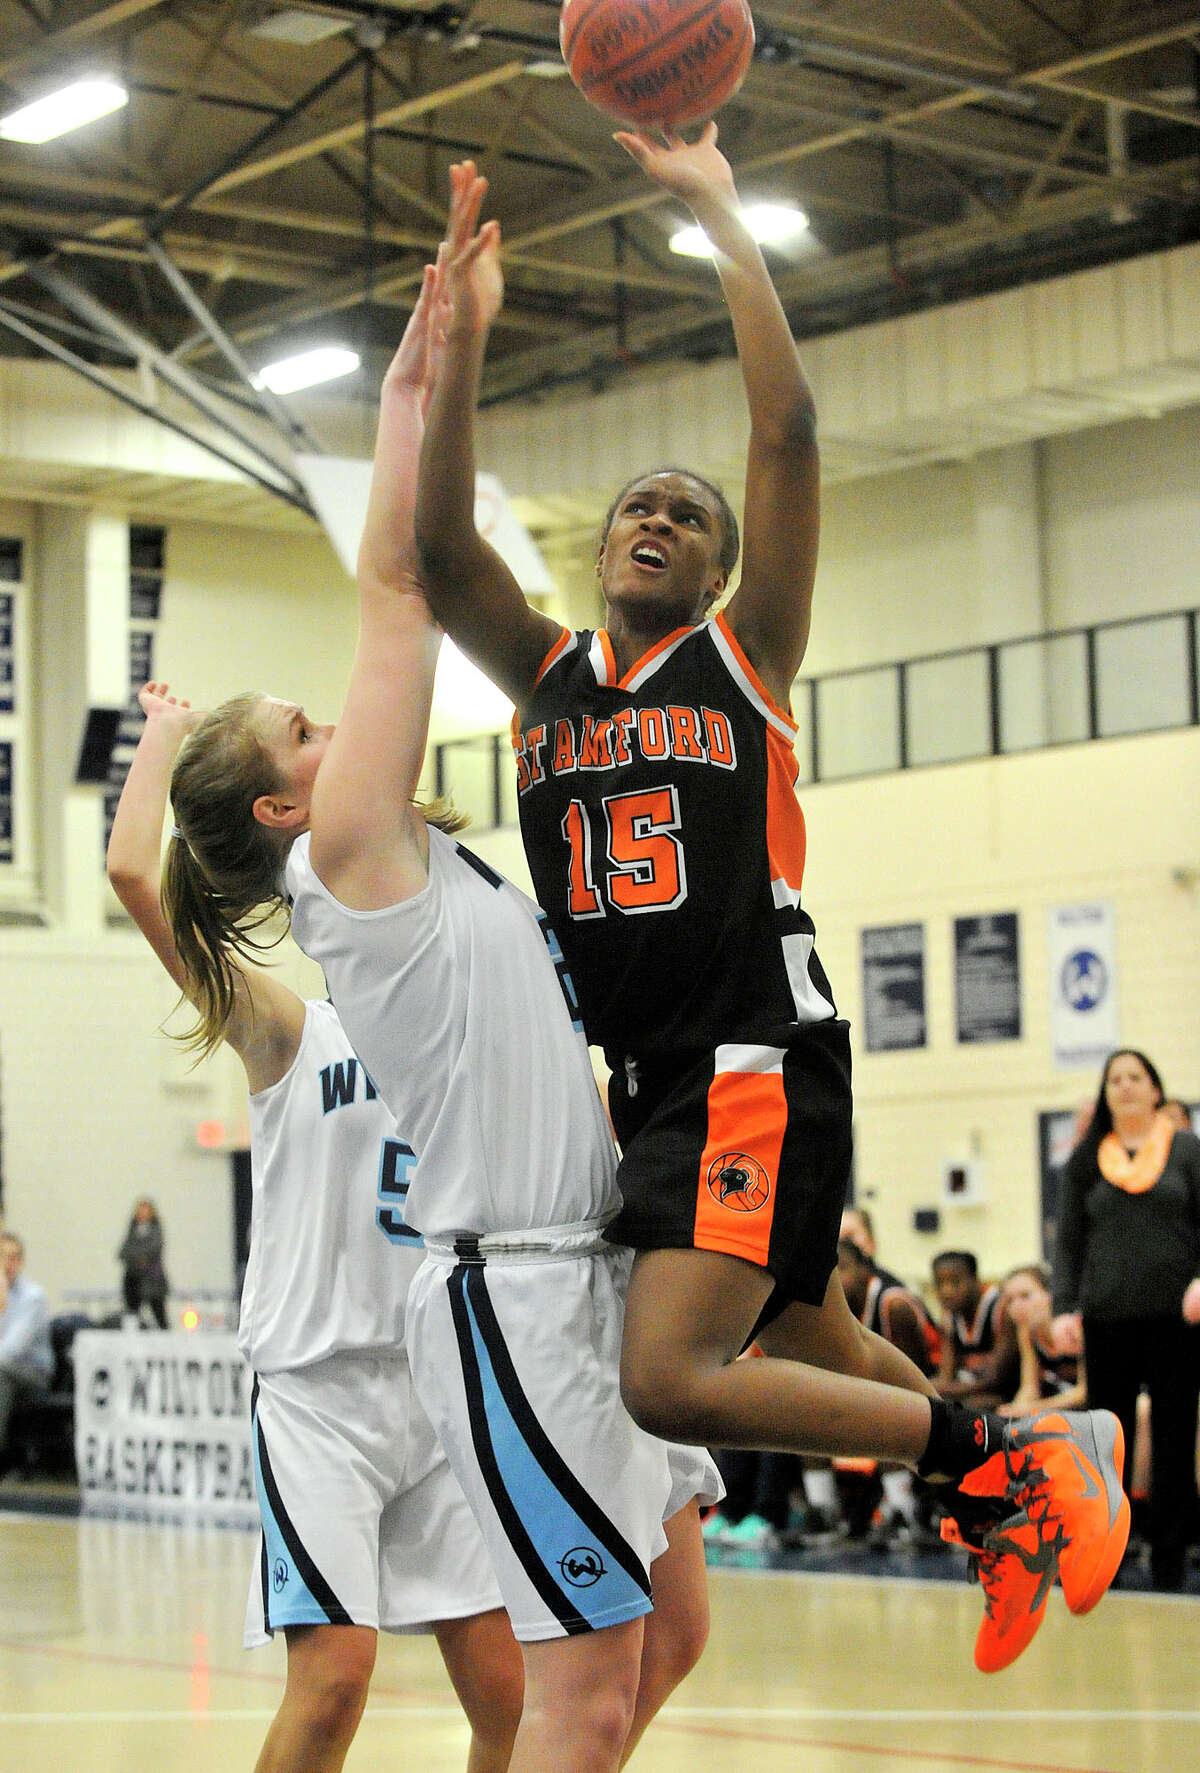 Stamford's Anisa Fortt shoots while under pressure from Wilton's Erin Cunningham during their basketball game at Wilton High School in Wilton, Conn., on Monday, Jan. 27, 2014. Stamford won, 55-50.